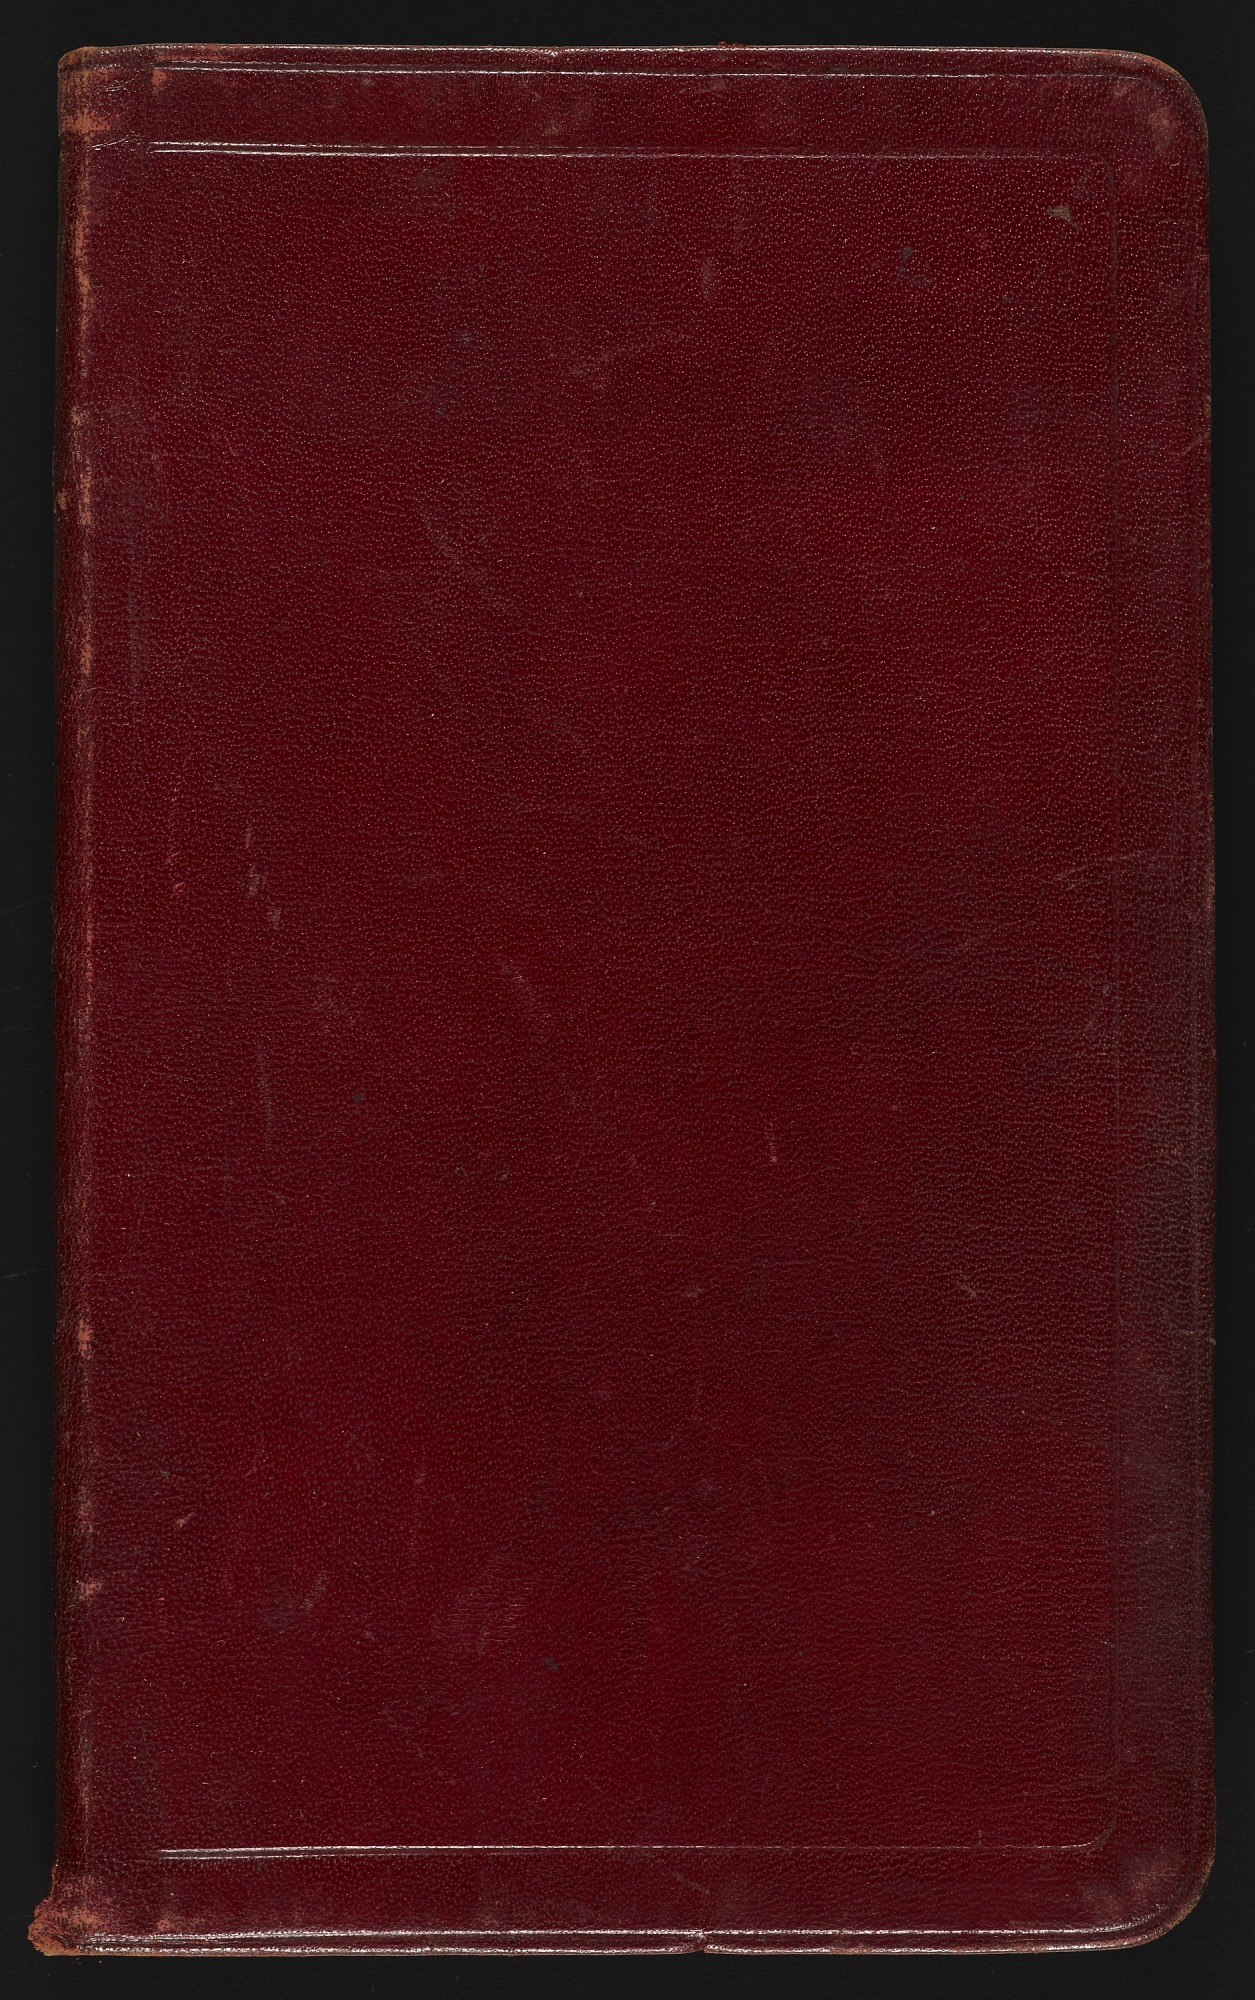 Field notes, undated, 2 volumes